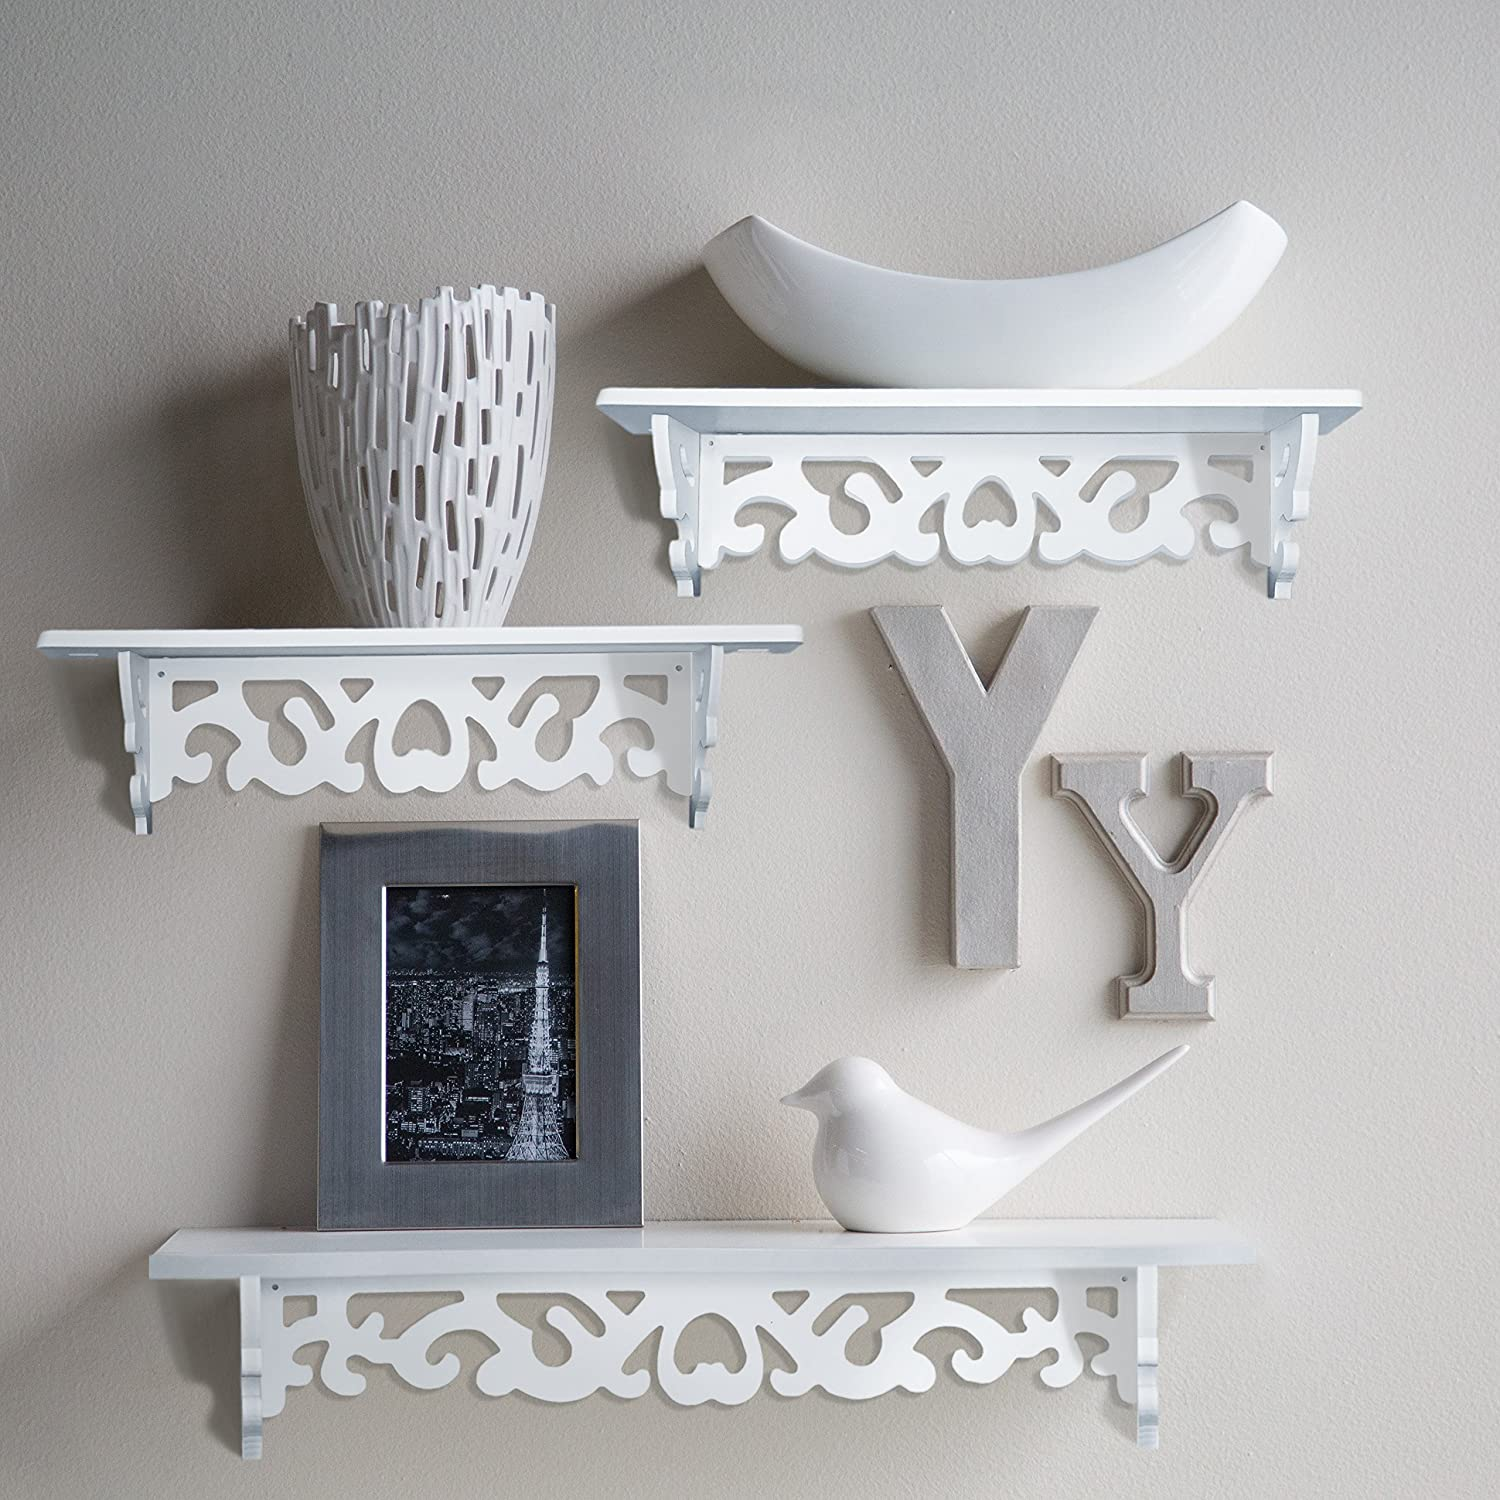 White Wall Shelves Part - 32: Amazon.com: Set Of 3 Floating Wall Shelves, Great For Books Or Collections,  Add Design And Taste To Your Room!: Home U0026 Kitchen